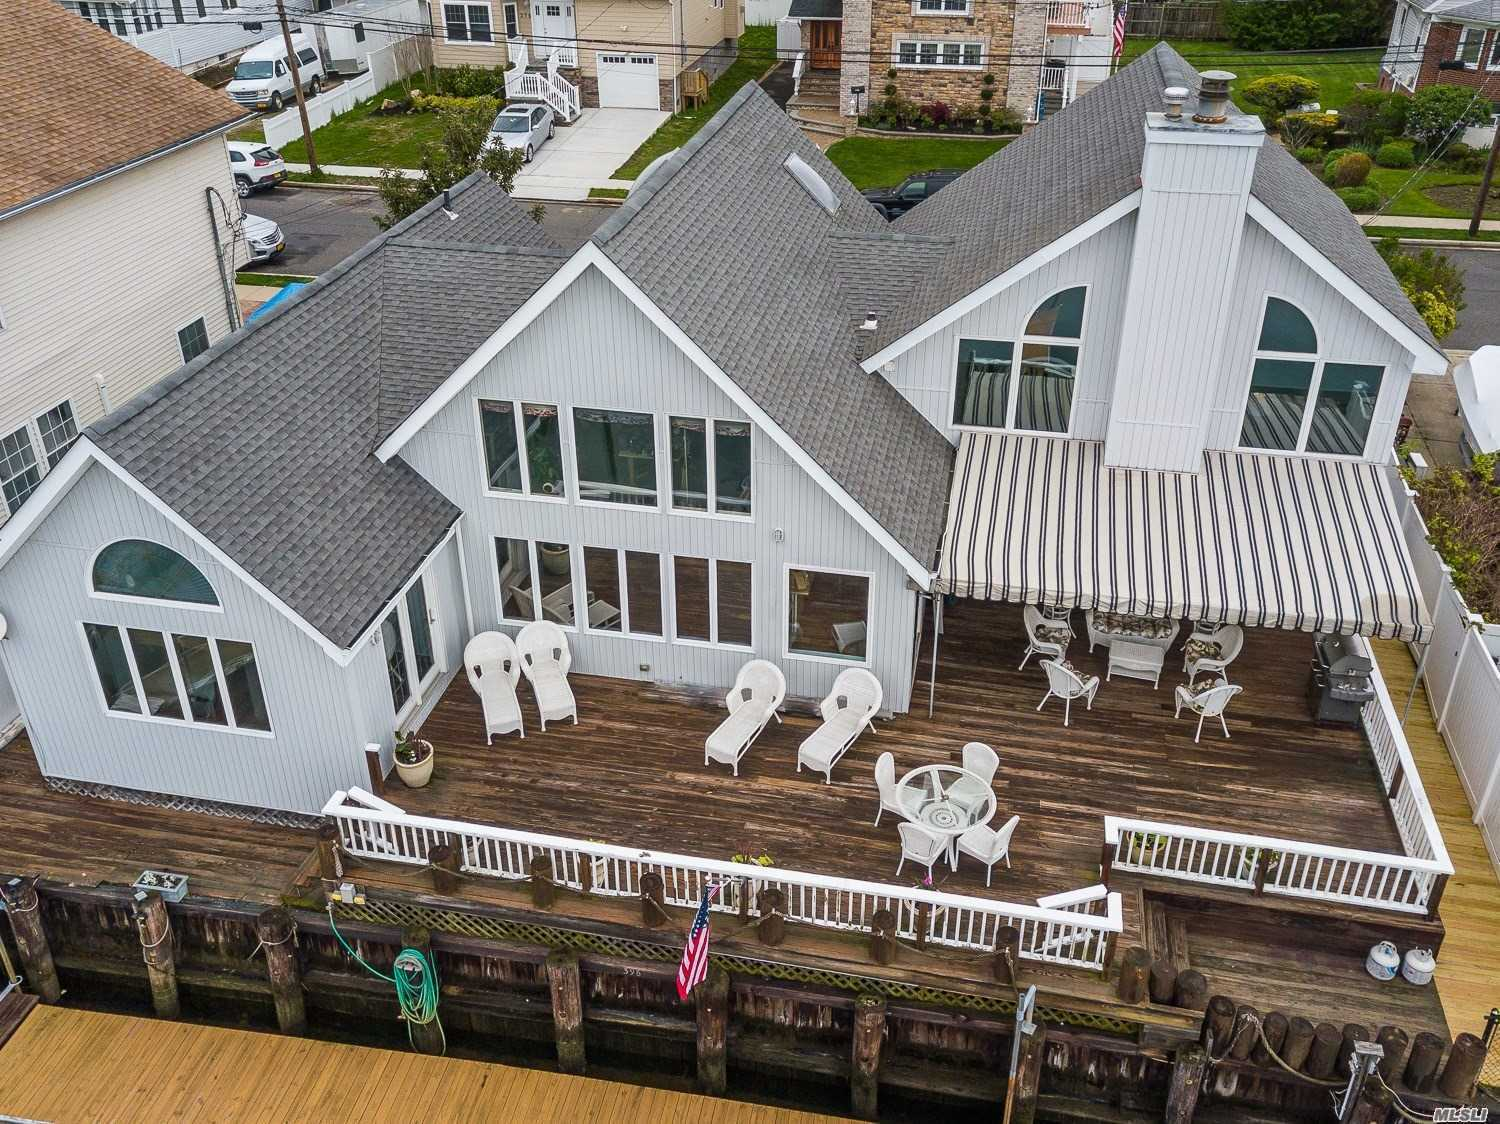 A Boater's Paradise! Luxury Waterfront Home On Deep Water Bay, 4 Mins To Open Bay.4 Bedrm 3 Full Bath w/Many Upgrades. Ground Fl Master Bed Suite w/heated Jacuzzi, Brazilian Hardwood Floors.17'Cultured Stone Fireplace In Vaulted Great Room. Handmade Cabinets , Bosch, Whirlpool, And Sub Zero Appliances 5 Years Old. 1, 000 sq f deck w/custom Awning, 3 Boat Slips. Western Exposure , Breathtaking Sunsets! House Designed To Optimize View In Every Rm.2 Car Atta Garage . Taxes In process Of Being Grieved